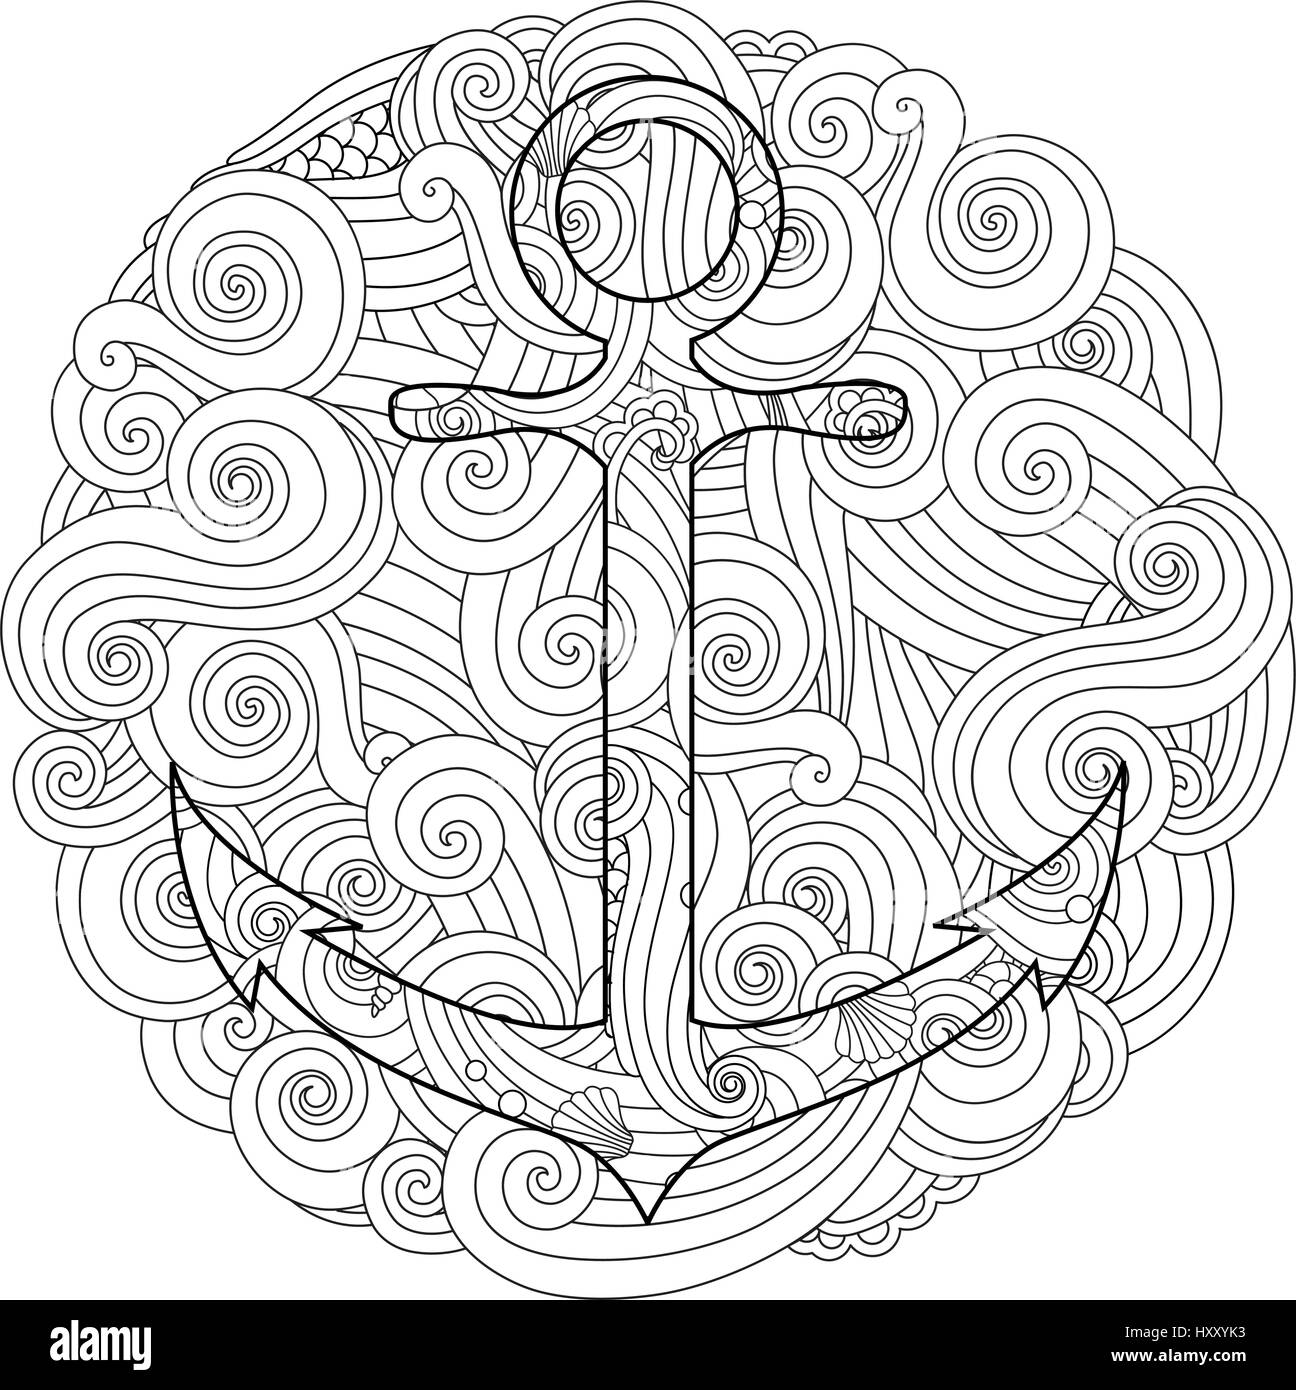 coloring page with anchor in wave mandala zentangle inspired doodle style